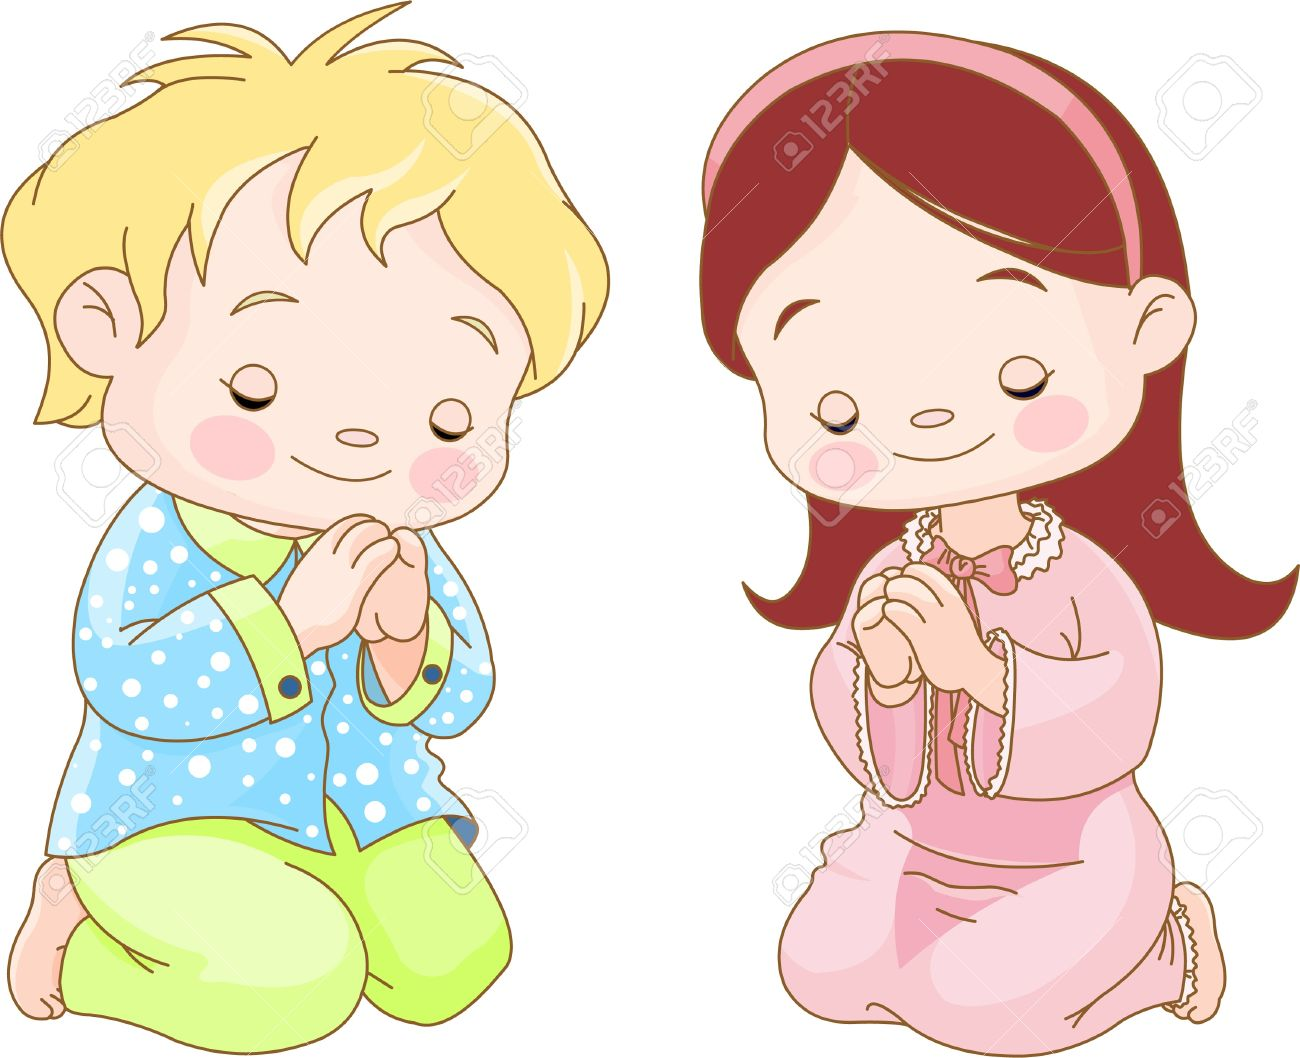 Baby Praying Angel Clipart - More information